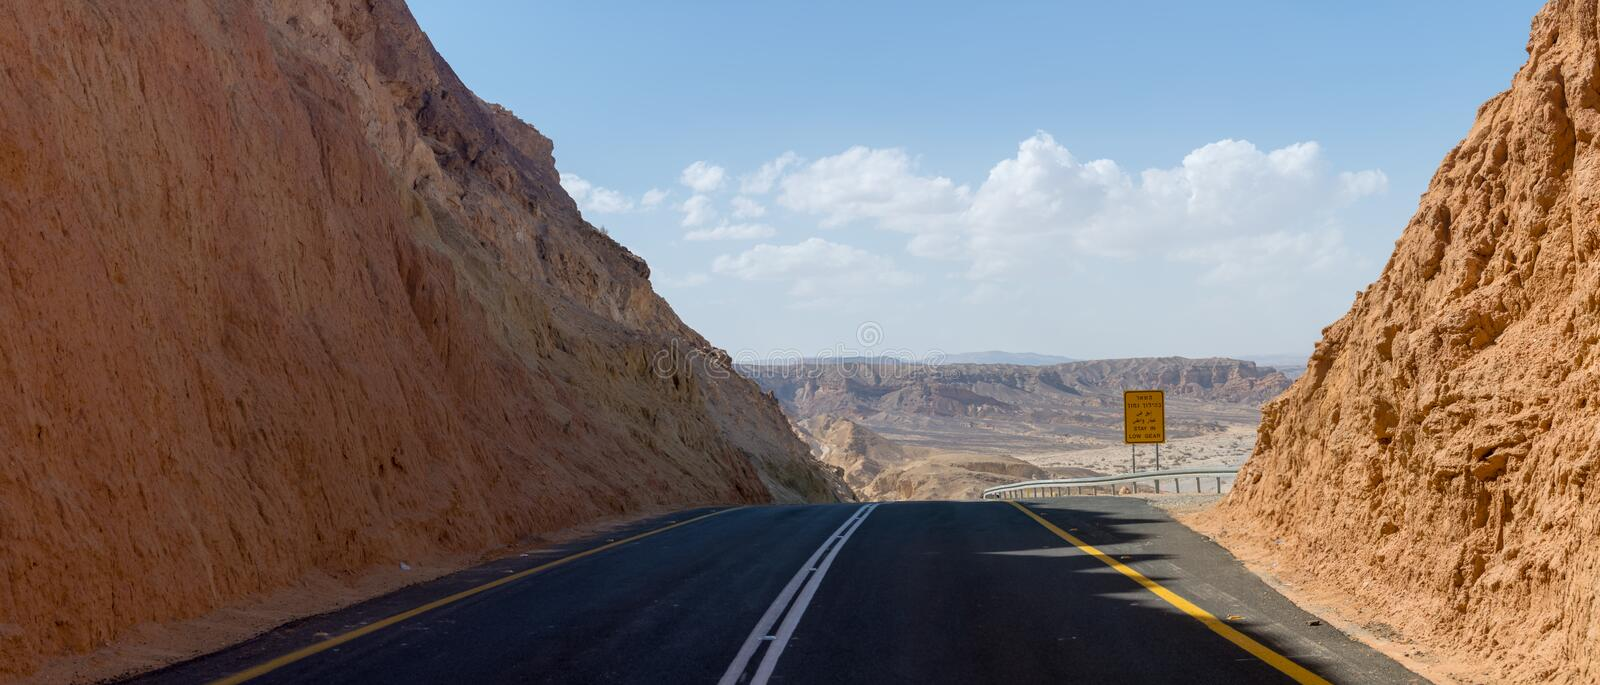 Asphalt road in desert Negev, Israel, road 40, transport infrastructure in desert, scenic mountains route from Eilat to north stock photography